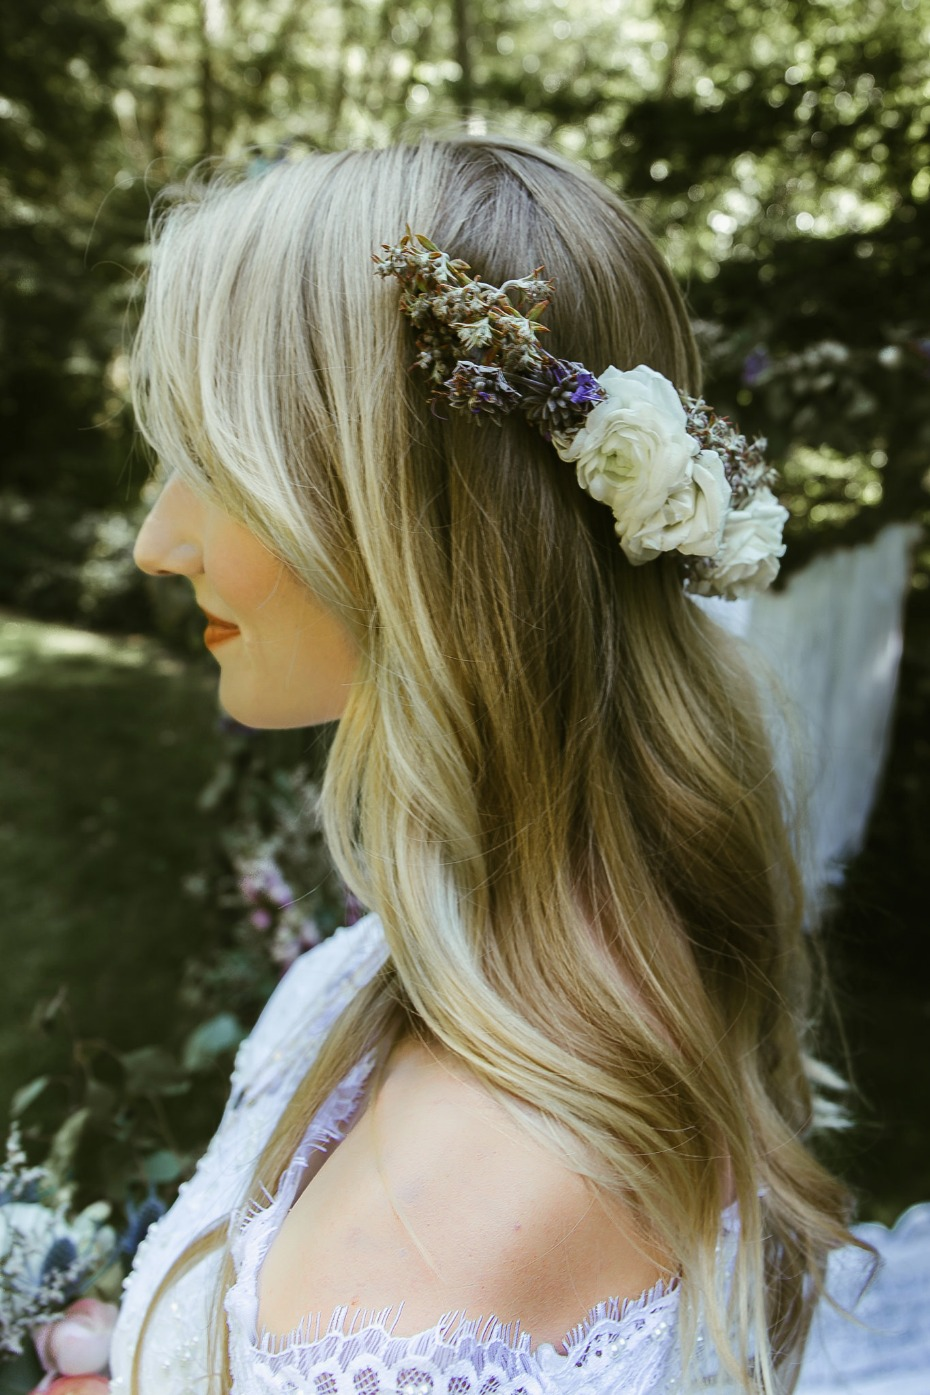 Floral hair piece for the bride